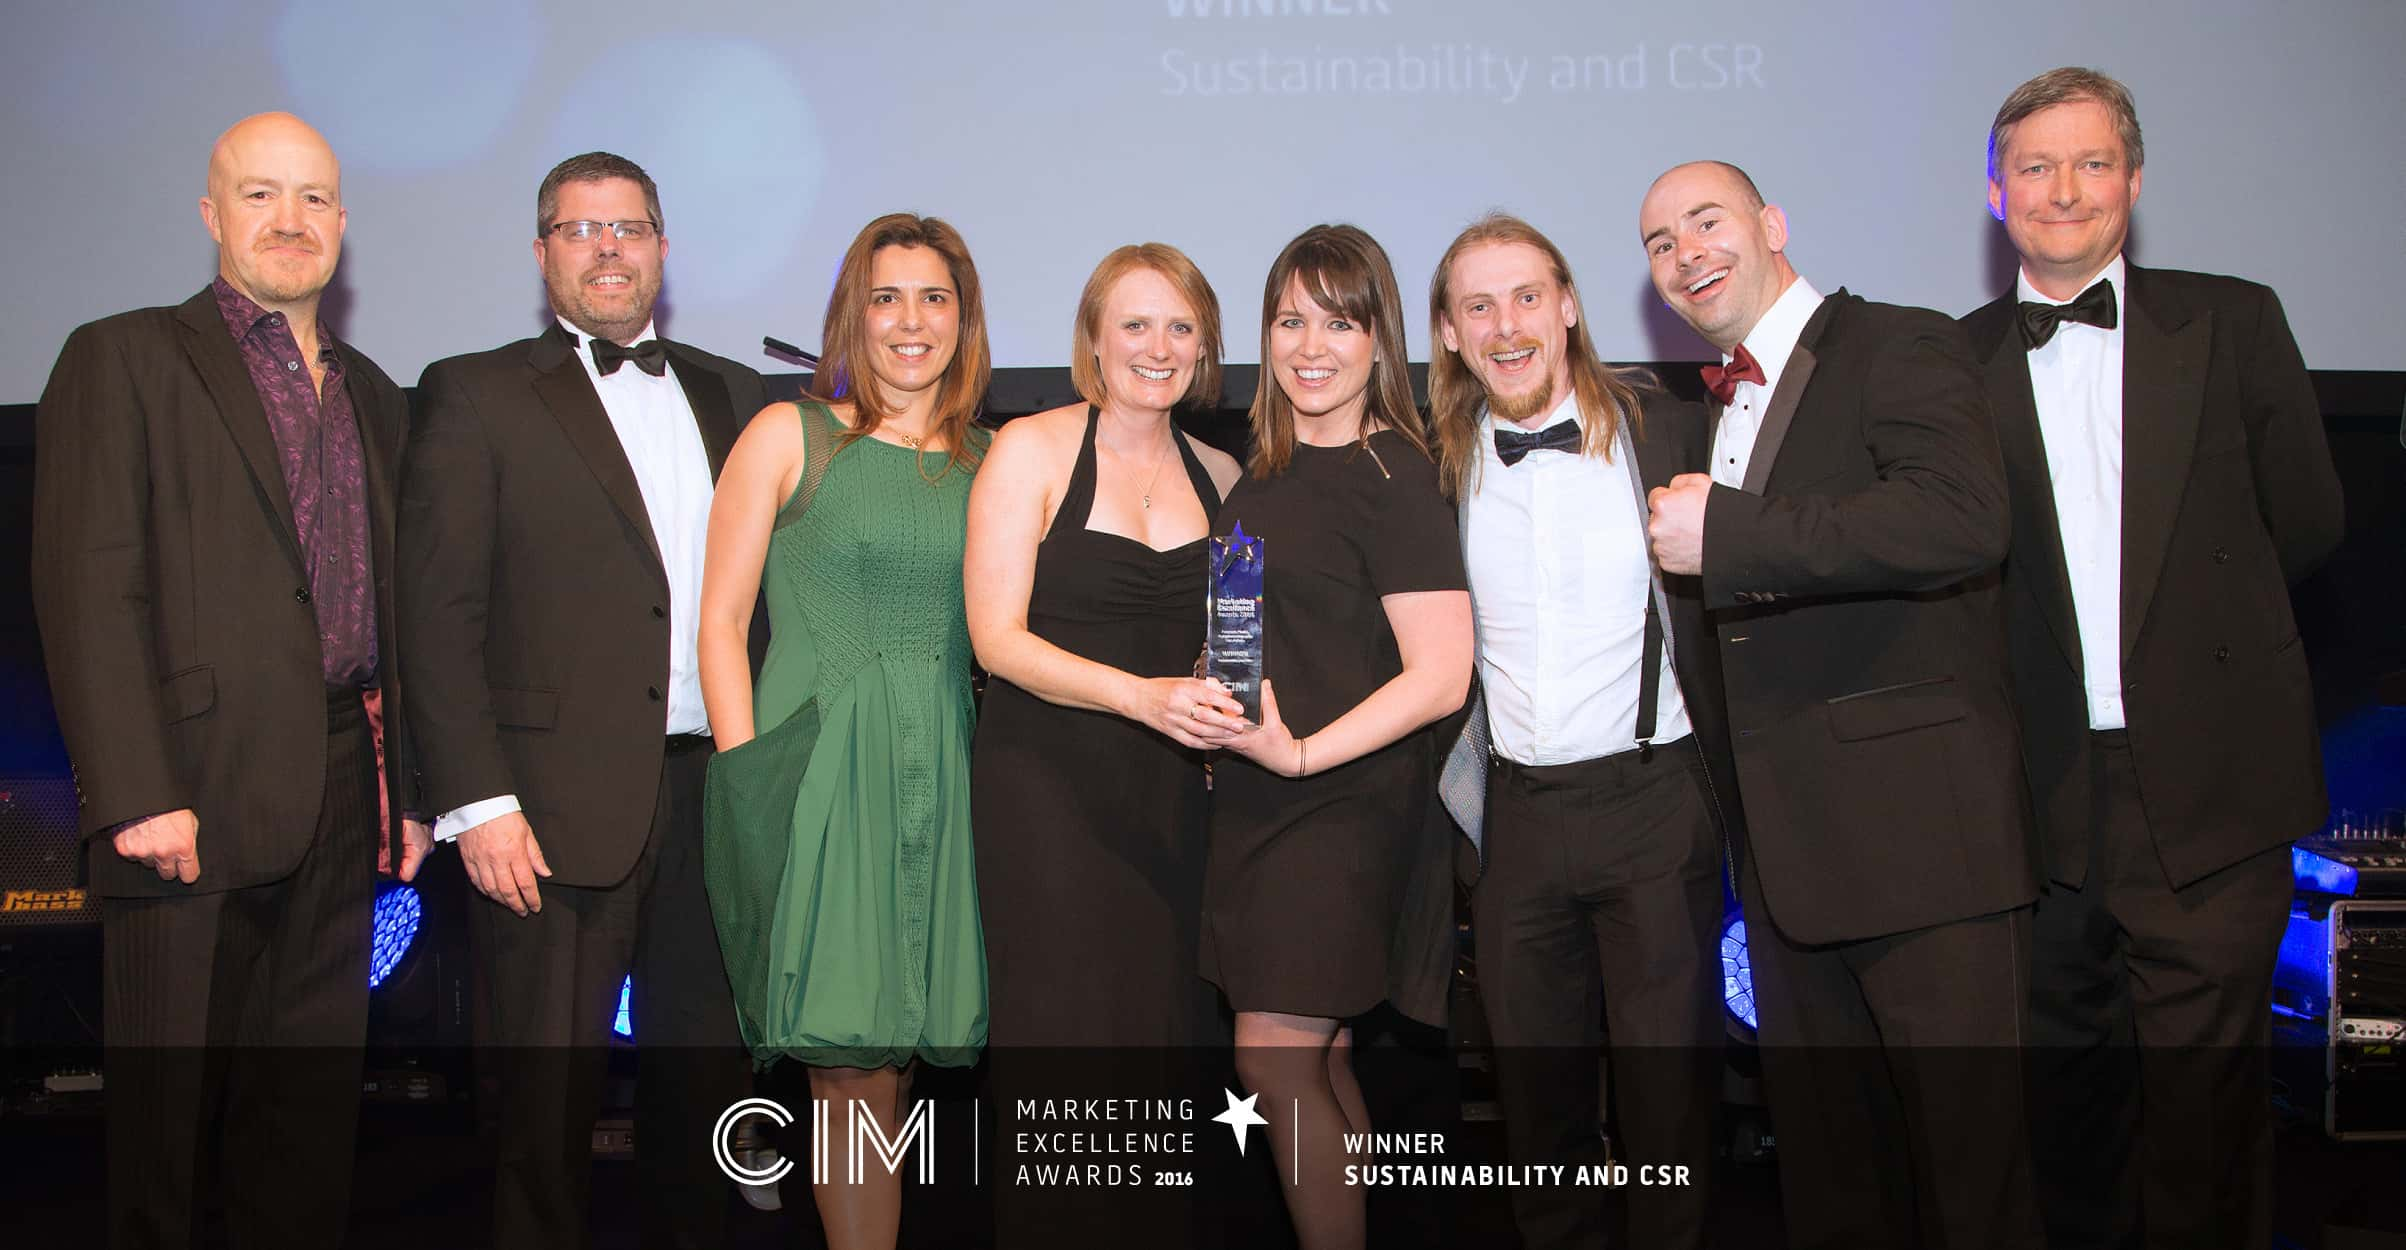 #ProudOfYou CIM Marketing Excellence Award Win